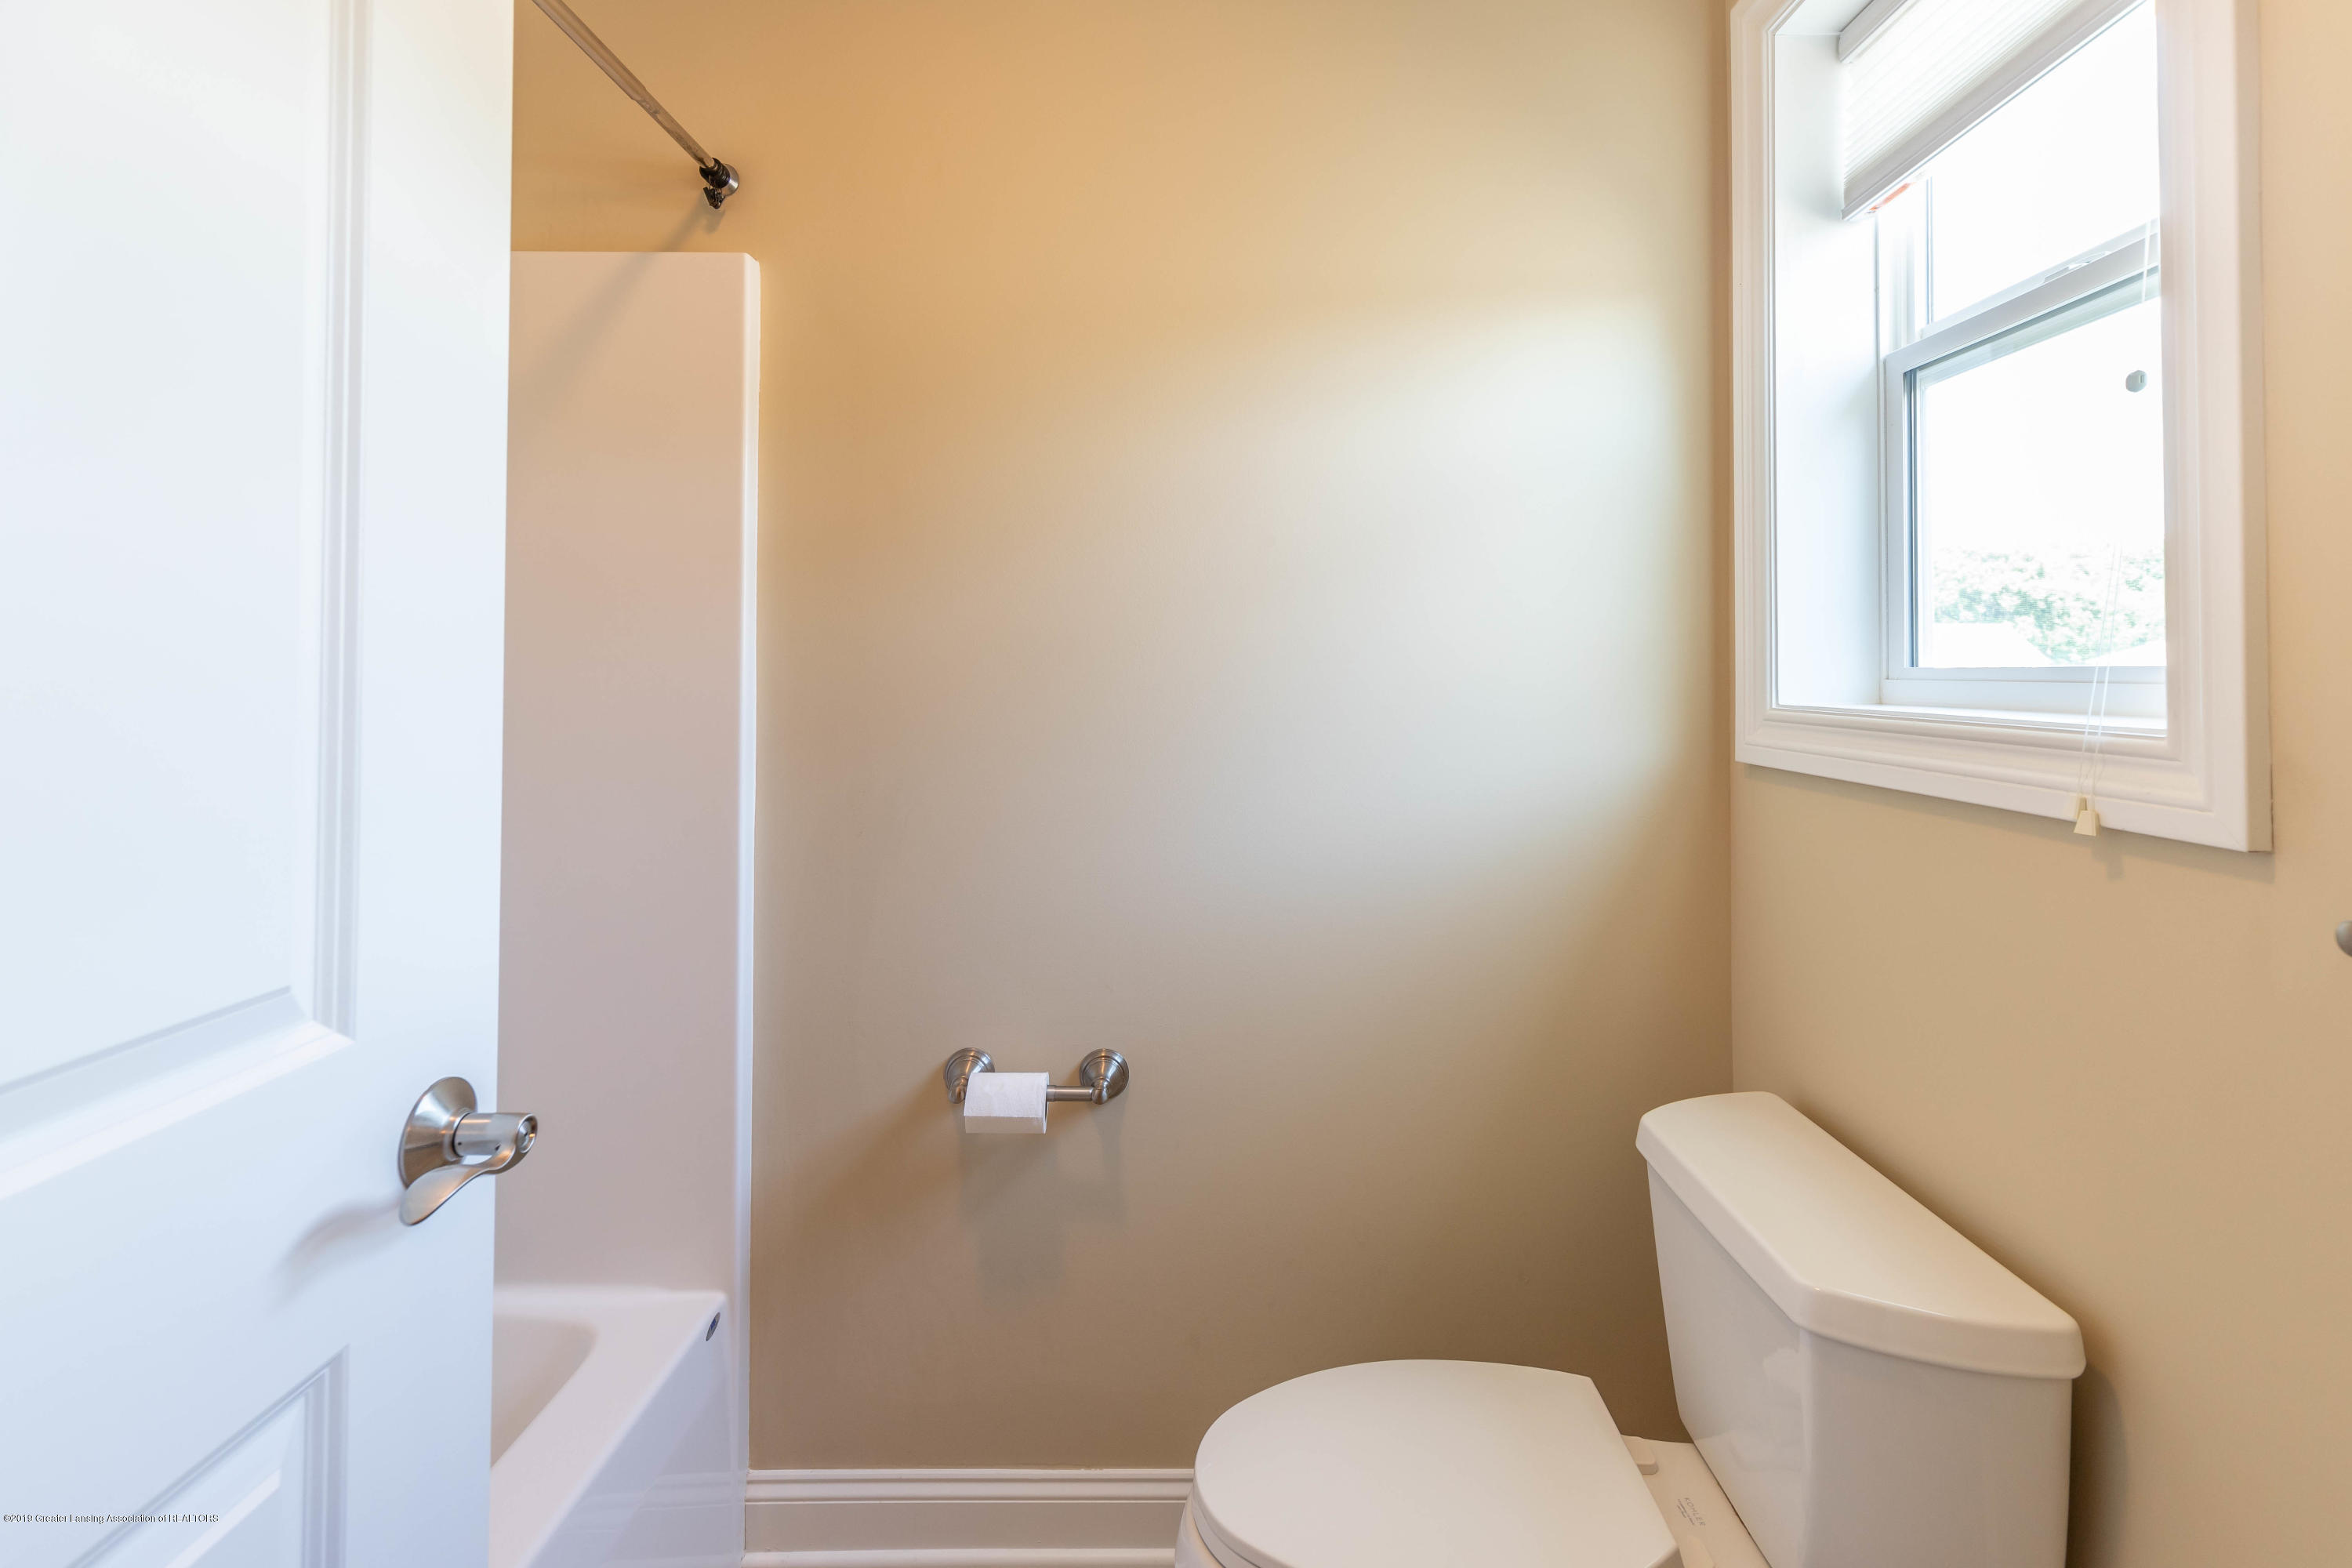 16580 Sanctuary Cir - Bathroom 2 - 38